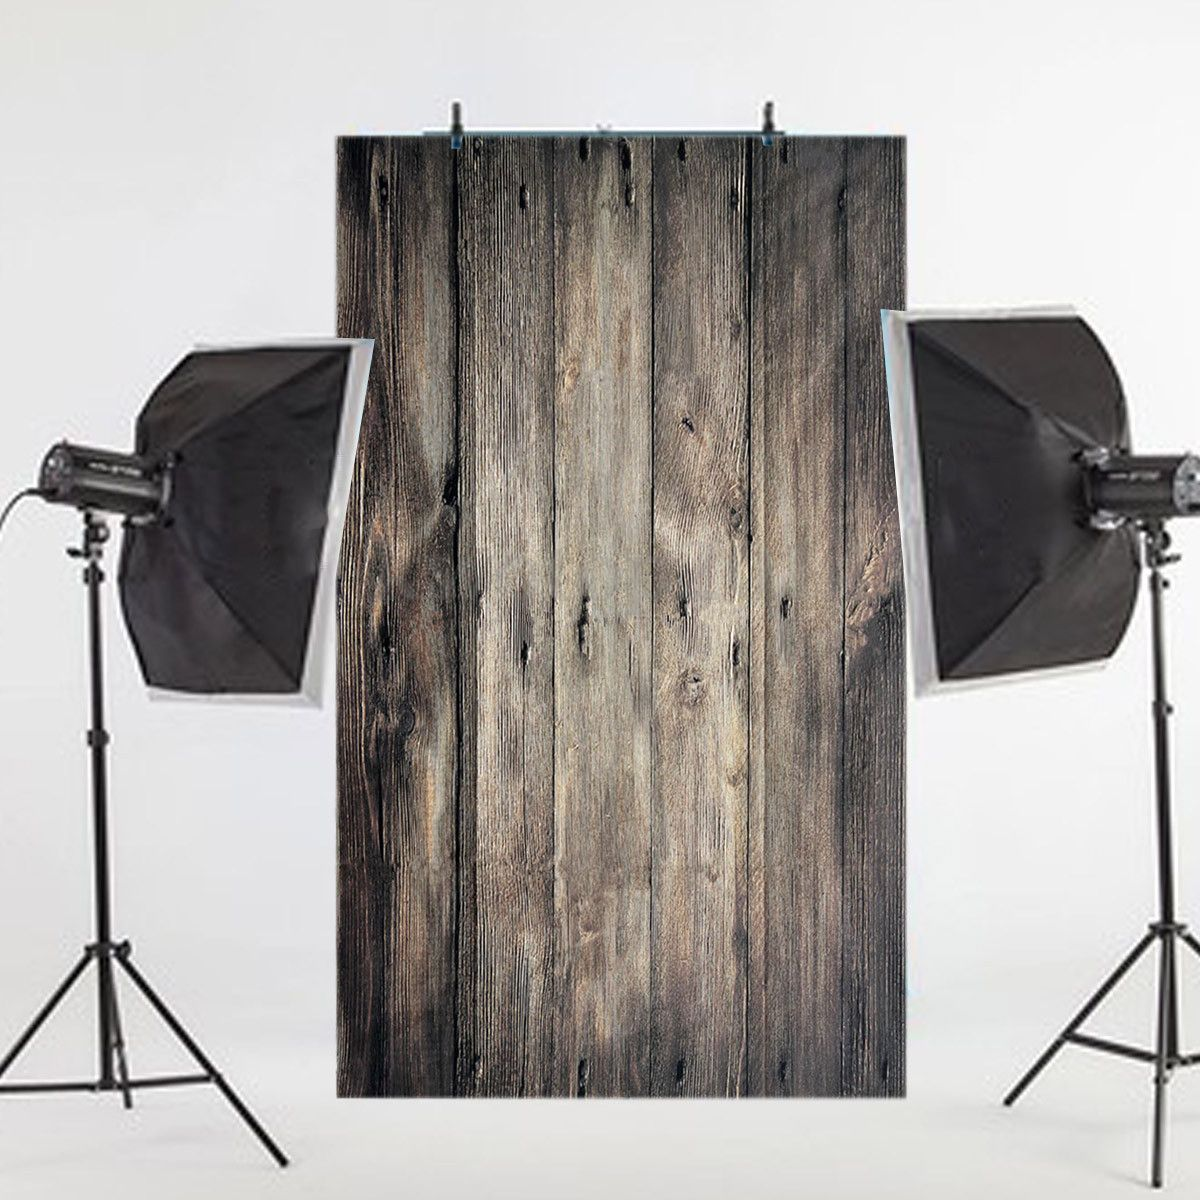 New 3x5FT Vintage Photography Backdrops Wood Vintage Photography Backdrop Backgrounds Studio Wood Background Fotografia емкость для специй или зубочисток balvi teckel цвет черный